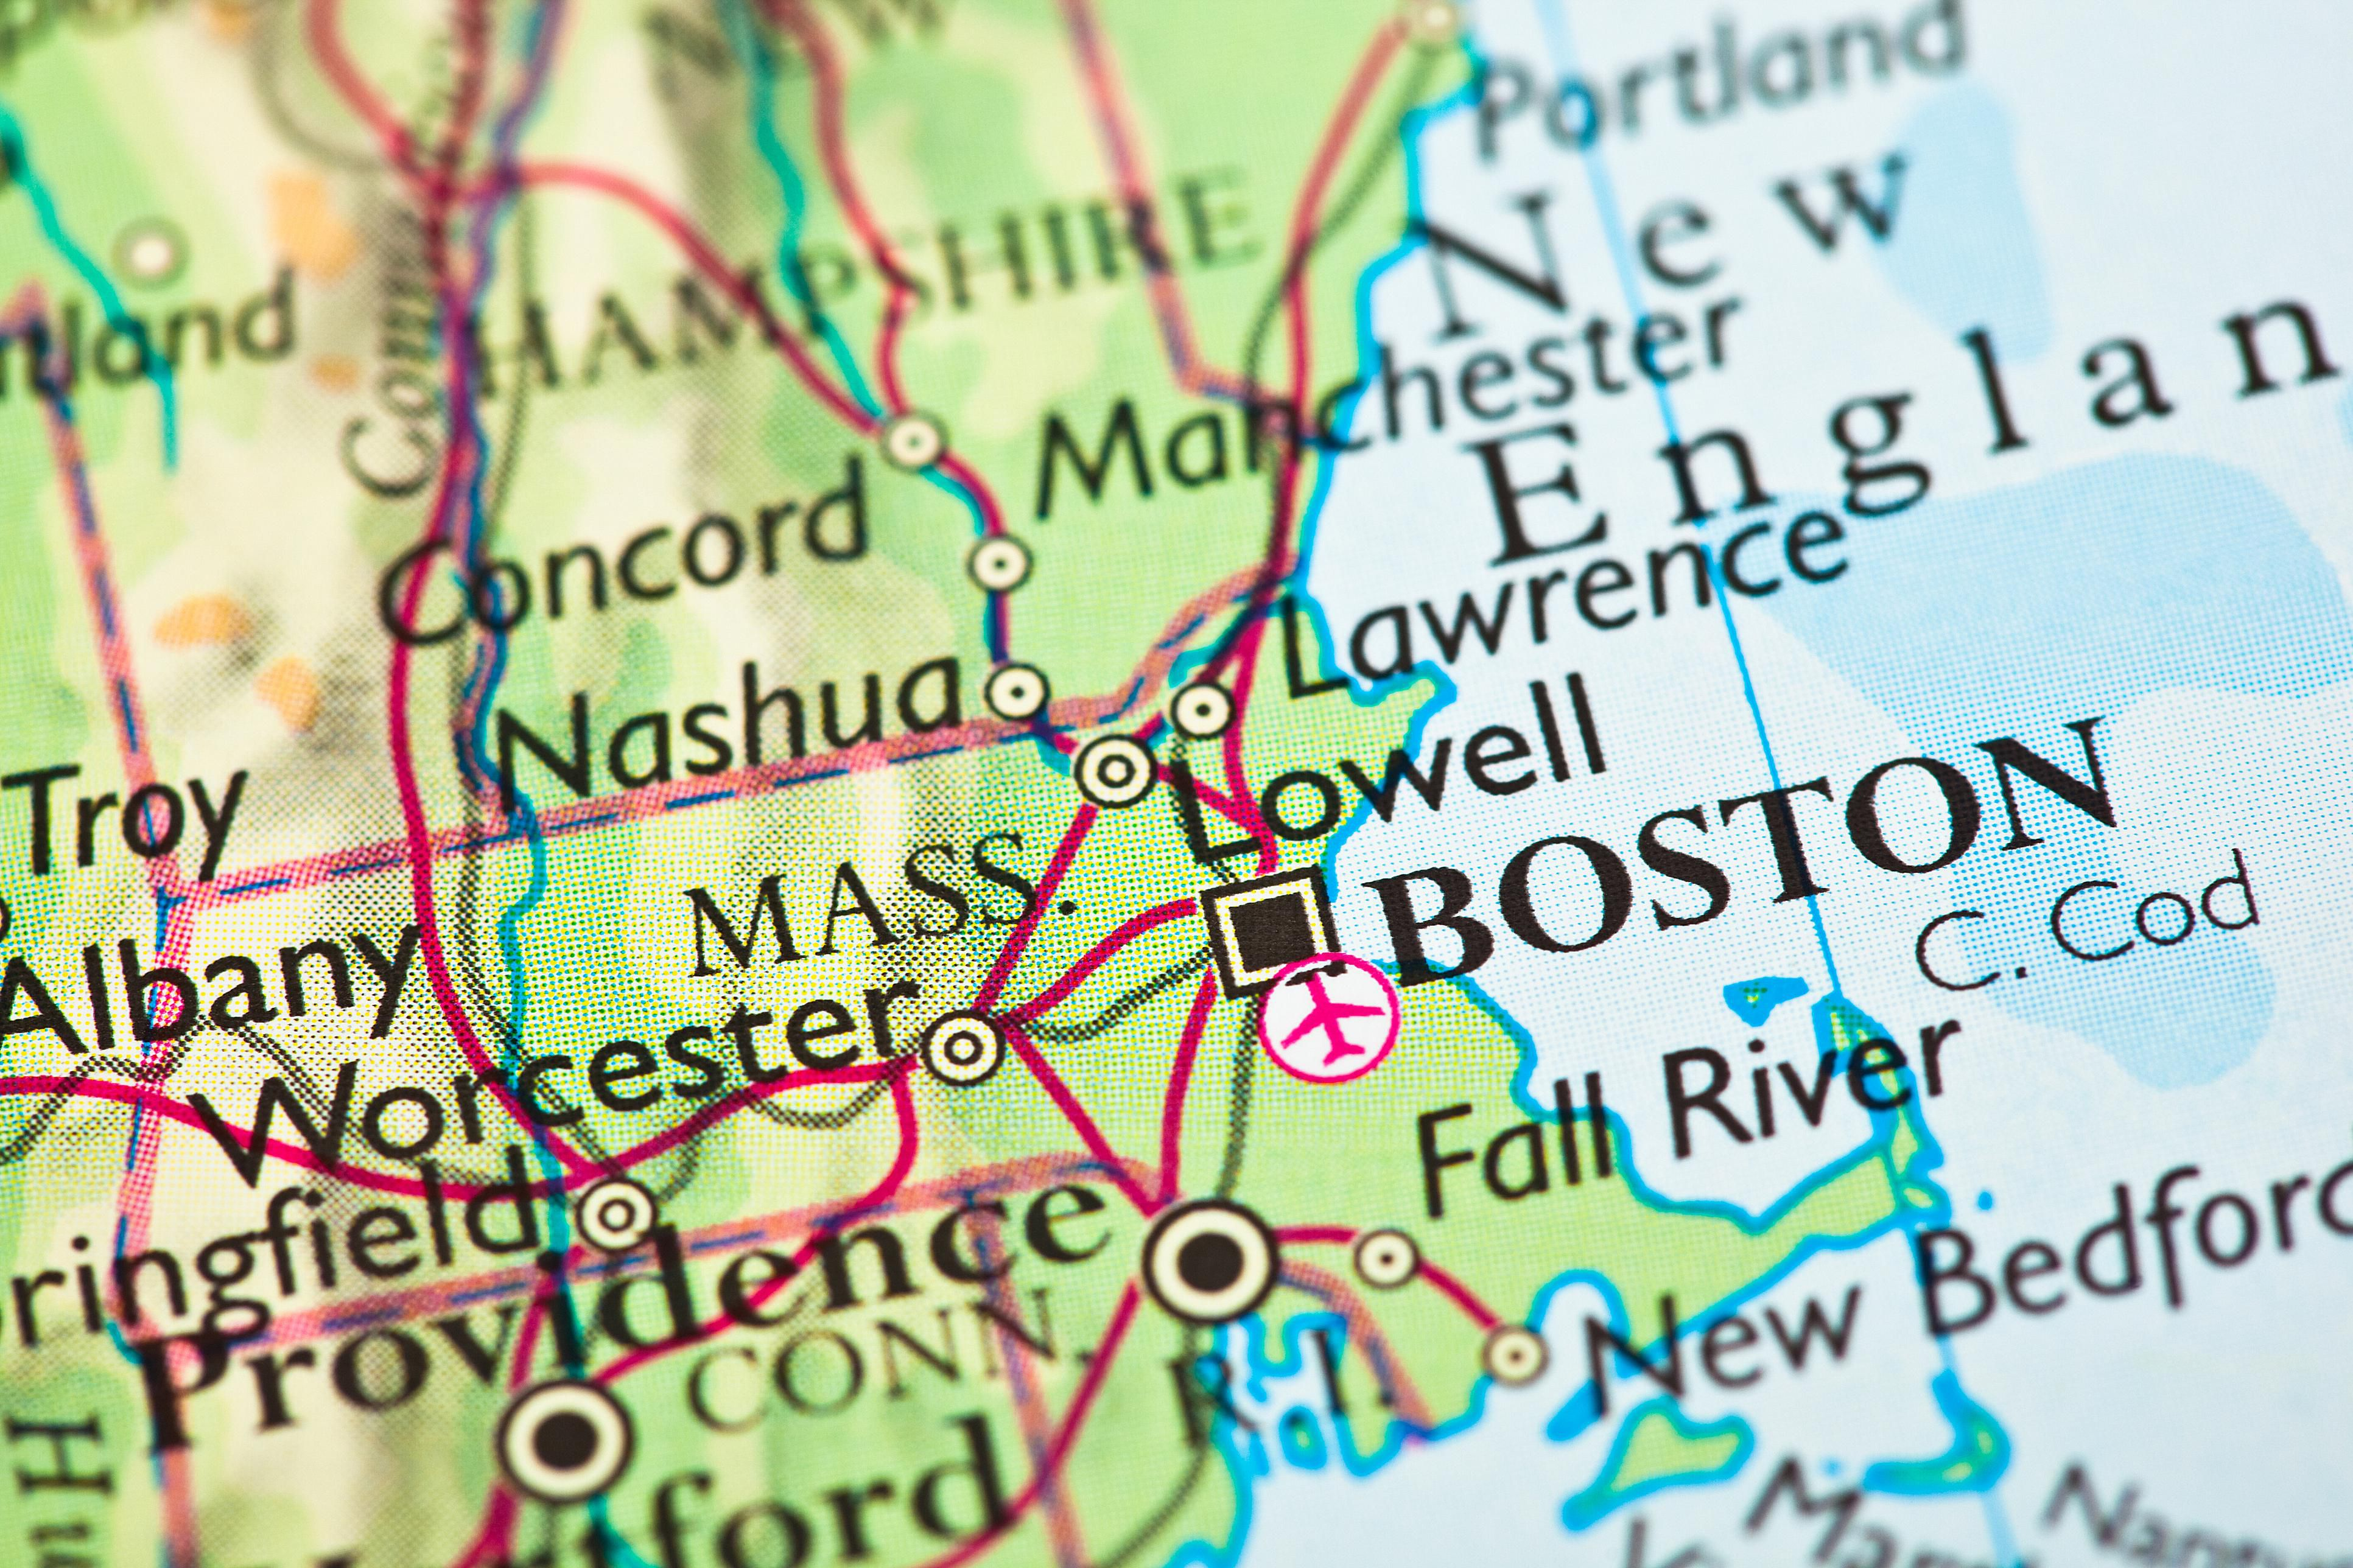 30 Boston Area Colleges and Universities